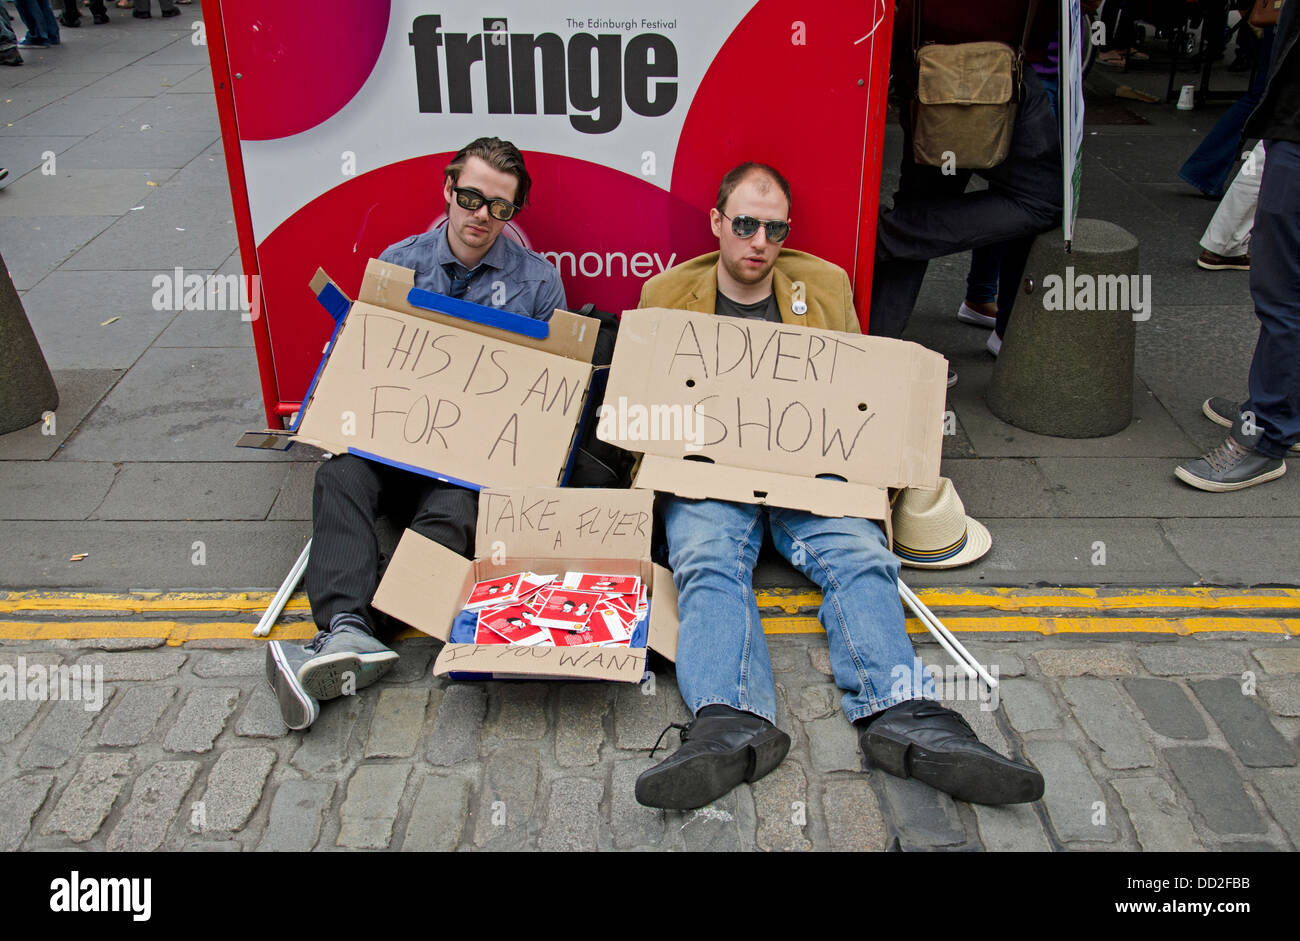 Two lazy performers promoting their show on the Edinburgh Fringe with the minimum of effort. - Stock Image